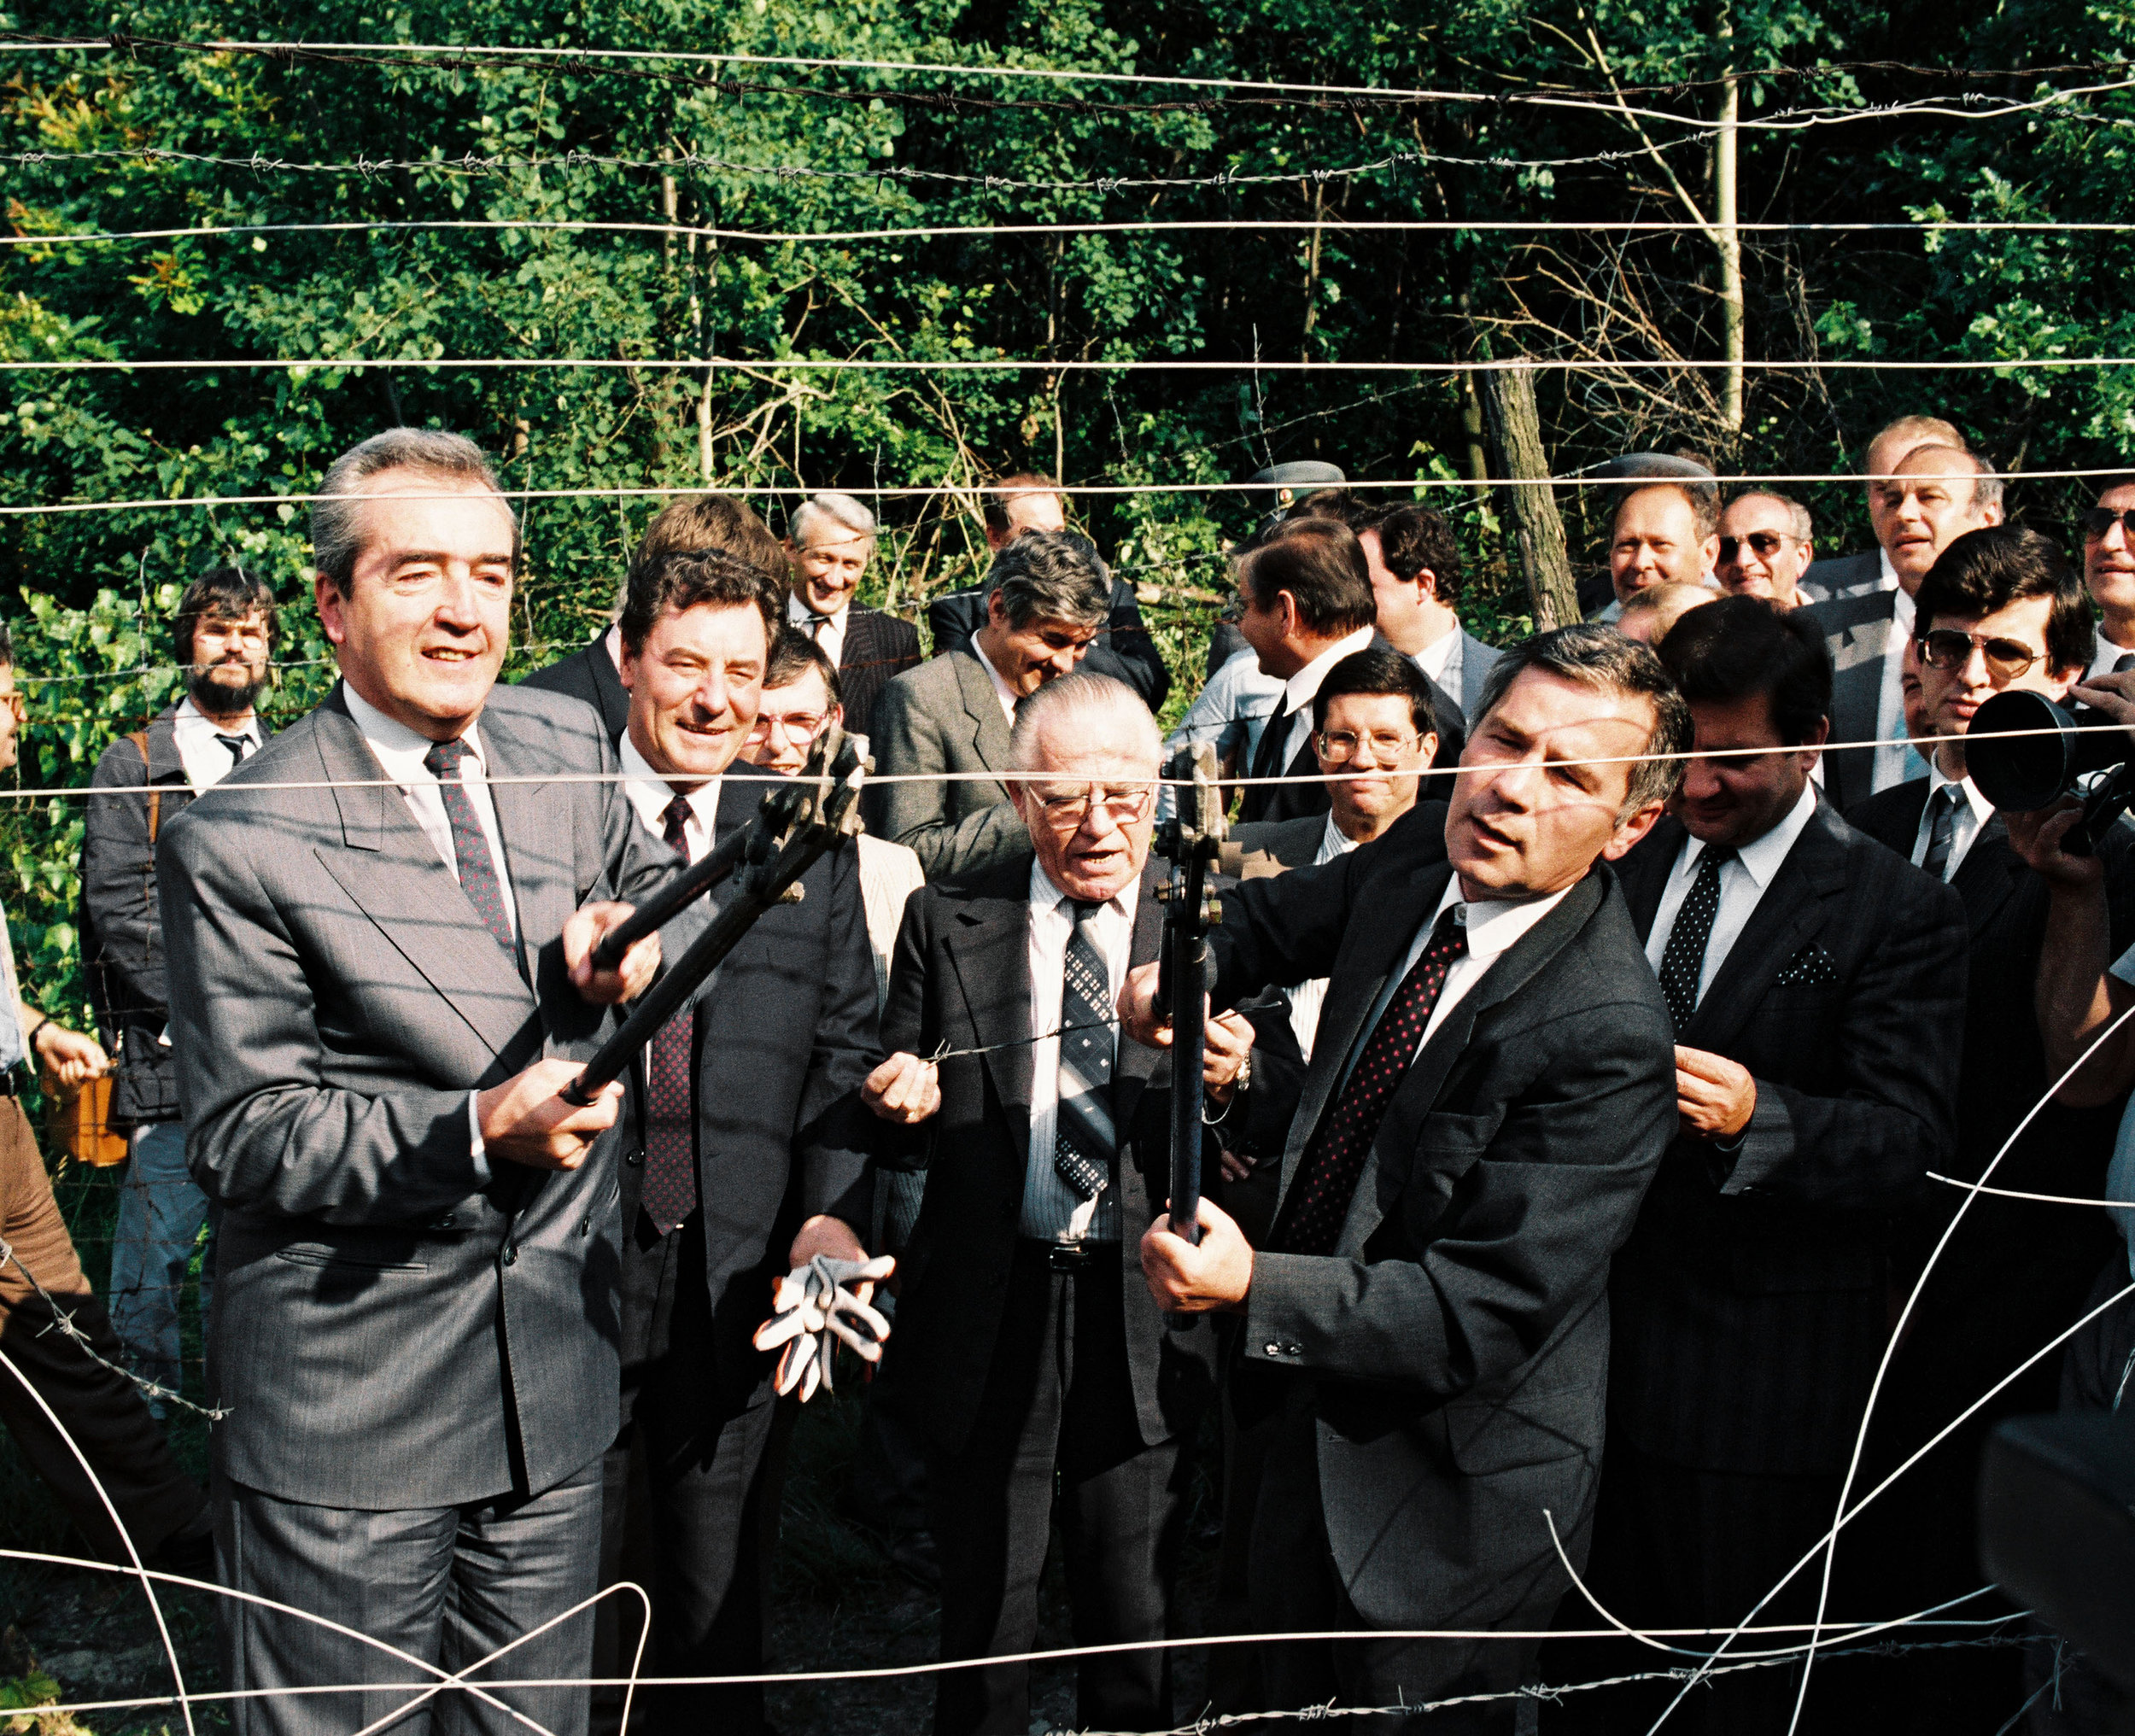 from left: Austrian Foreign Minister Alois Mock and his Hungarian counterpart Gyula Horn cut the Iron Curtain on June 27, 1989 (c) Hopi-Media